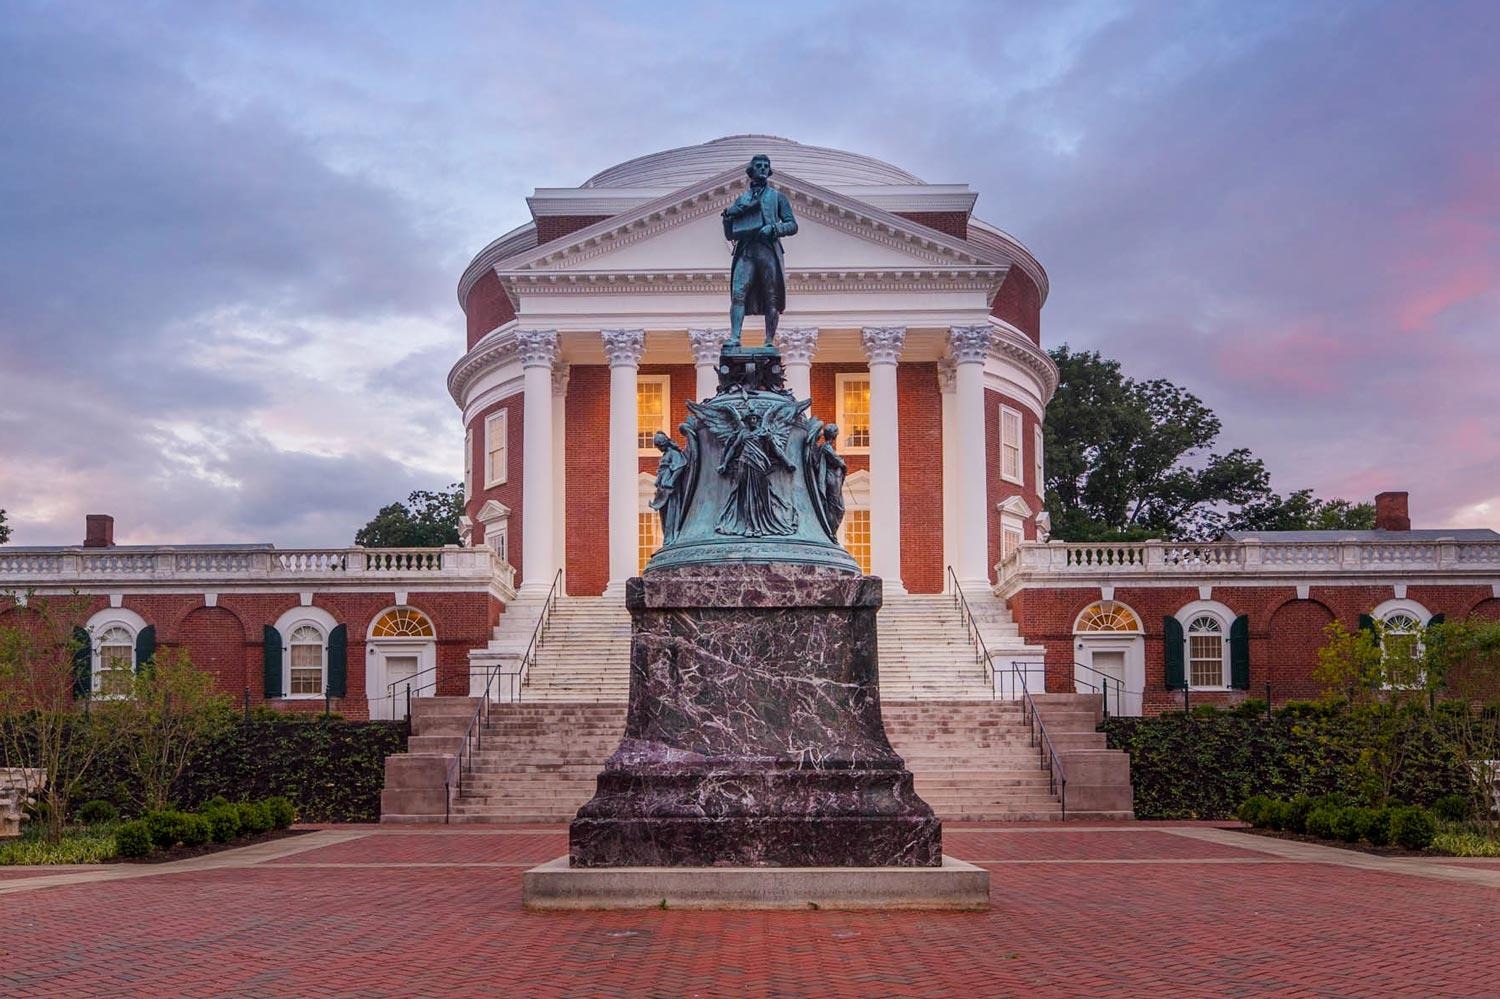 What Does It Cost to Attend the University of Virginia?